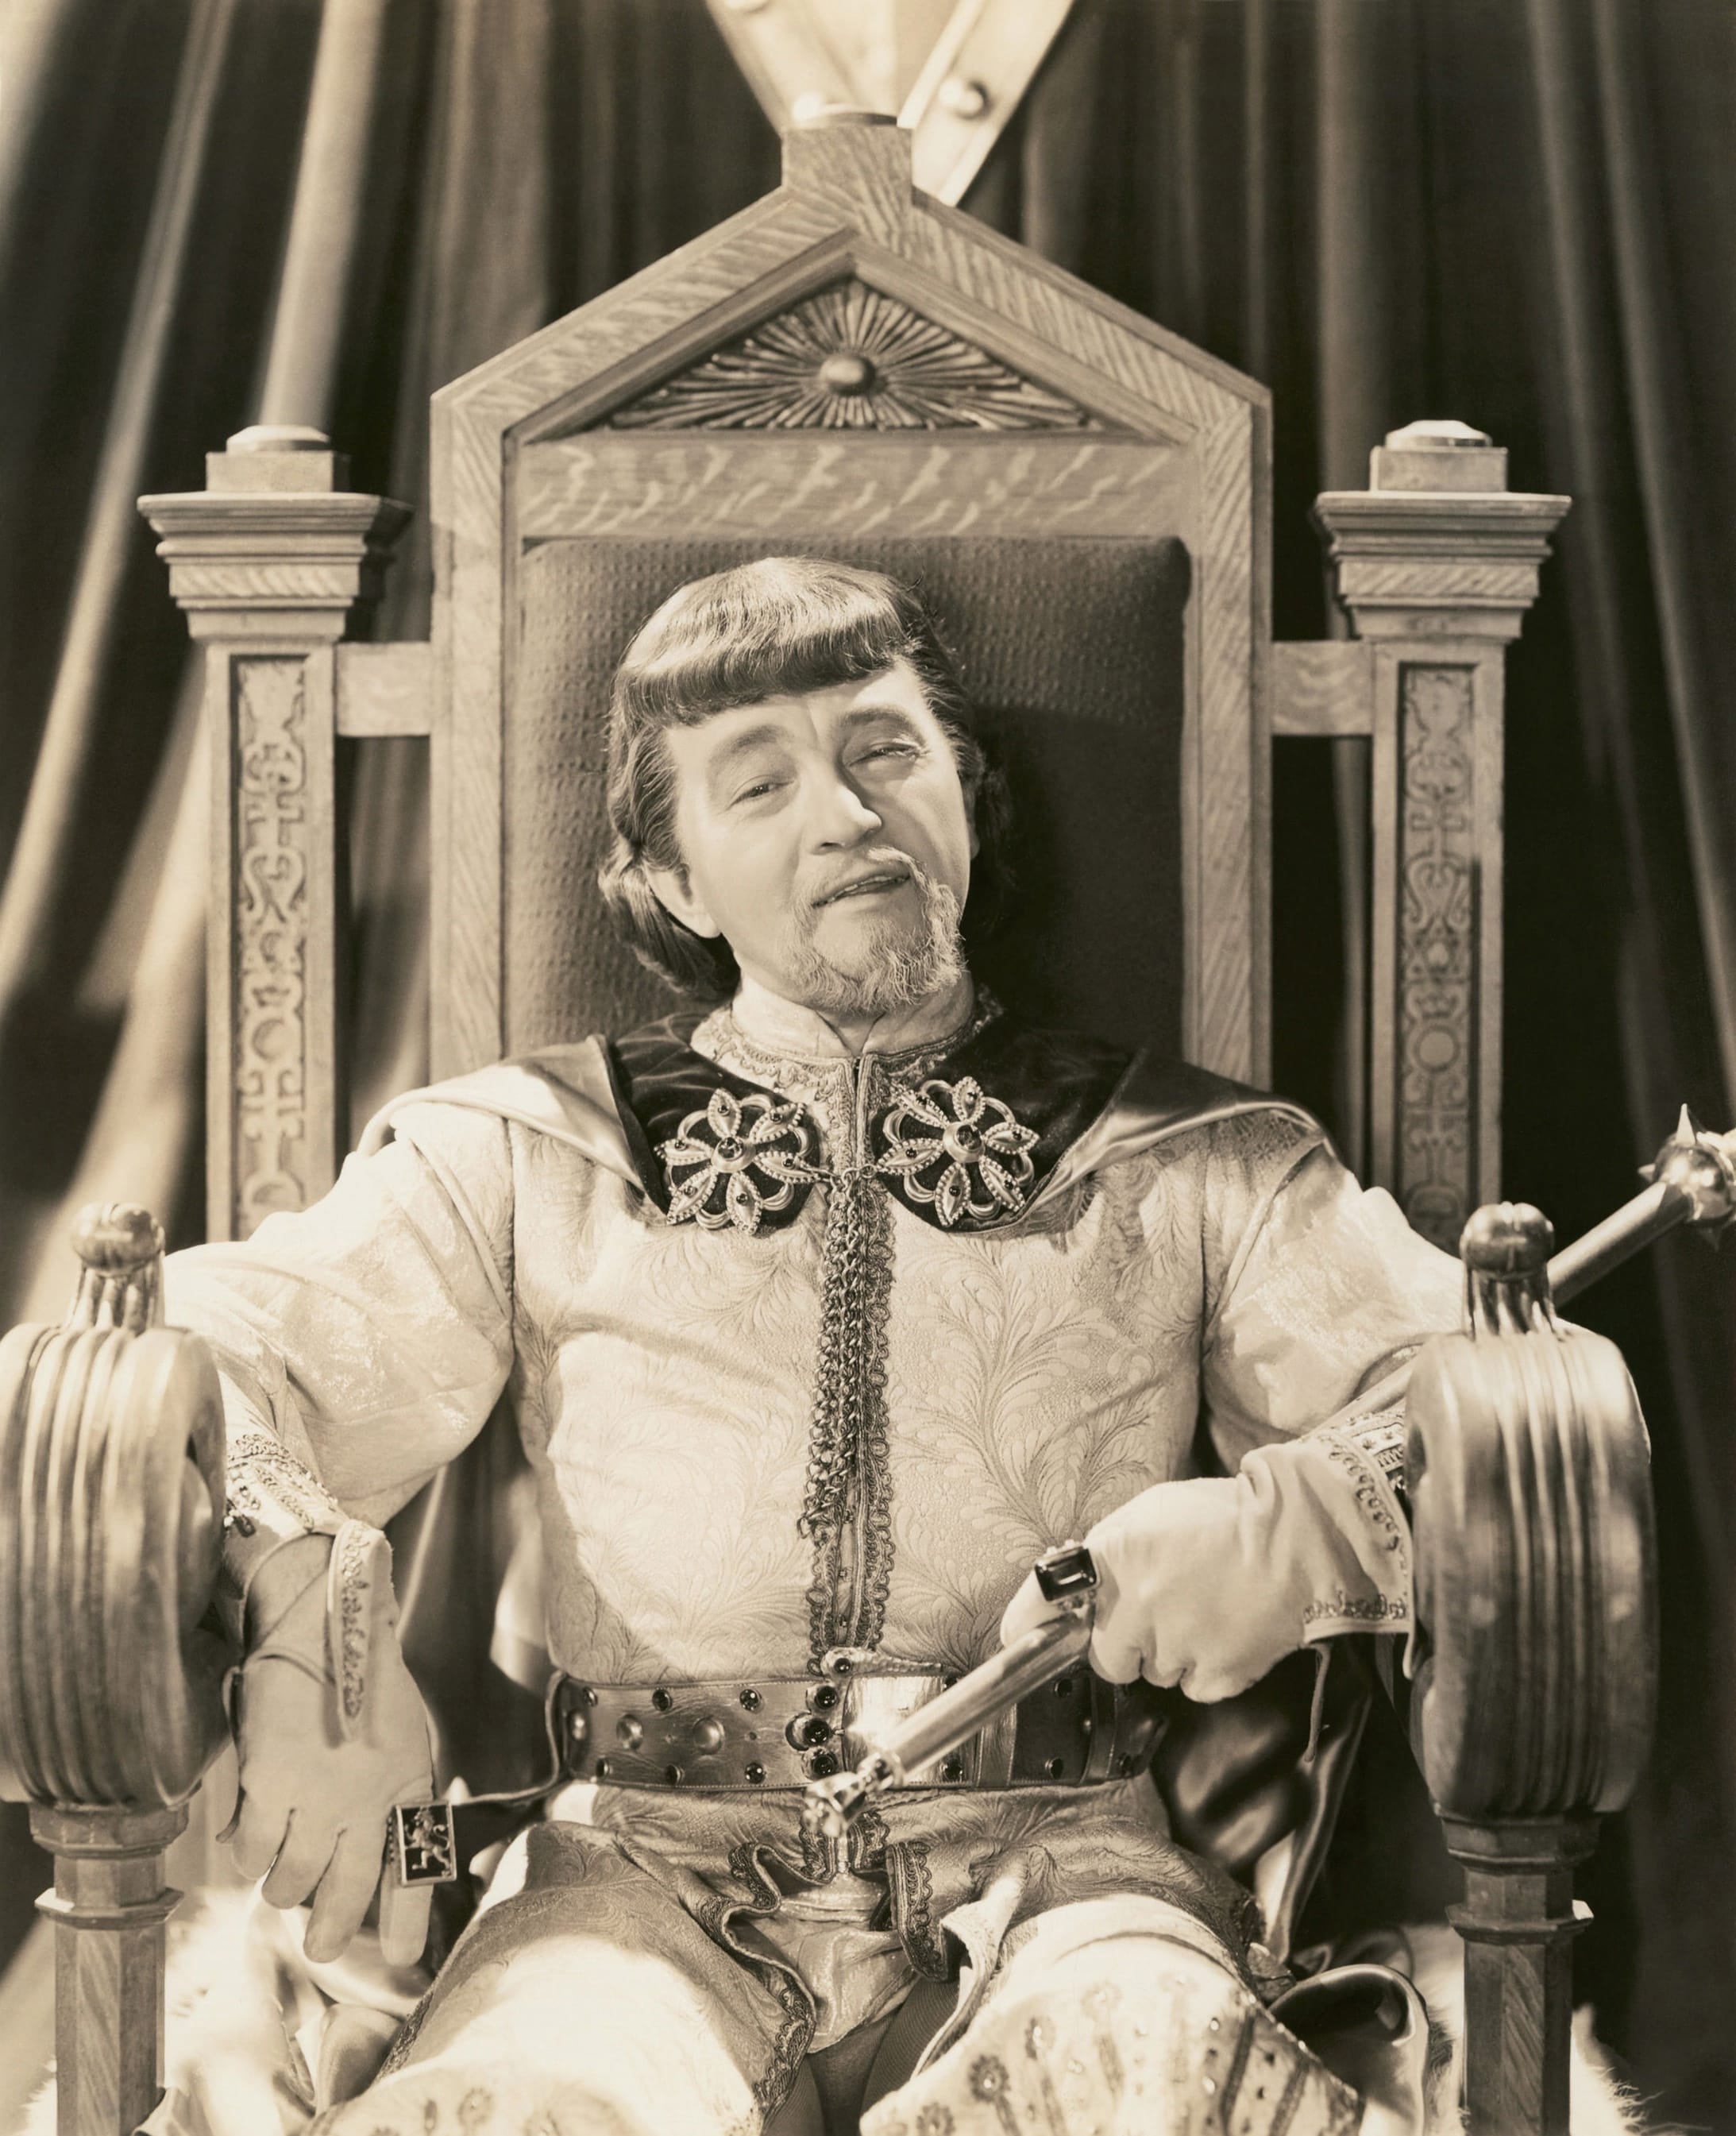 Claude Rains For mobile